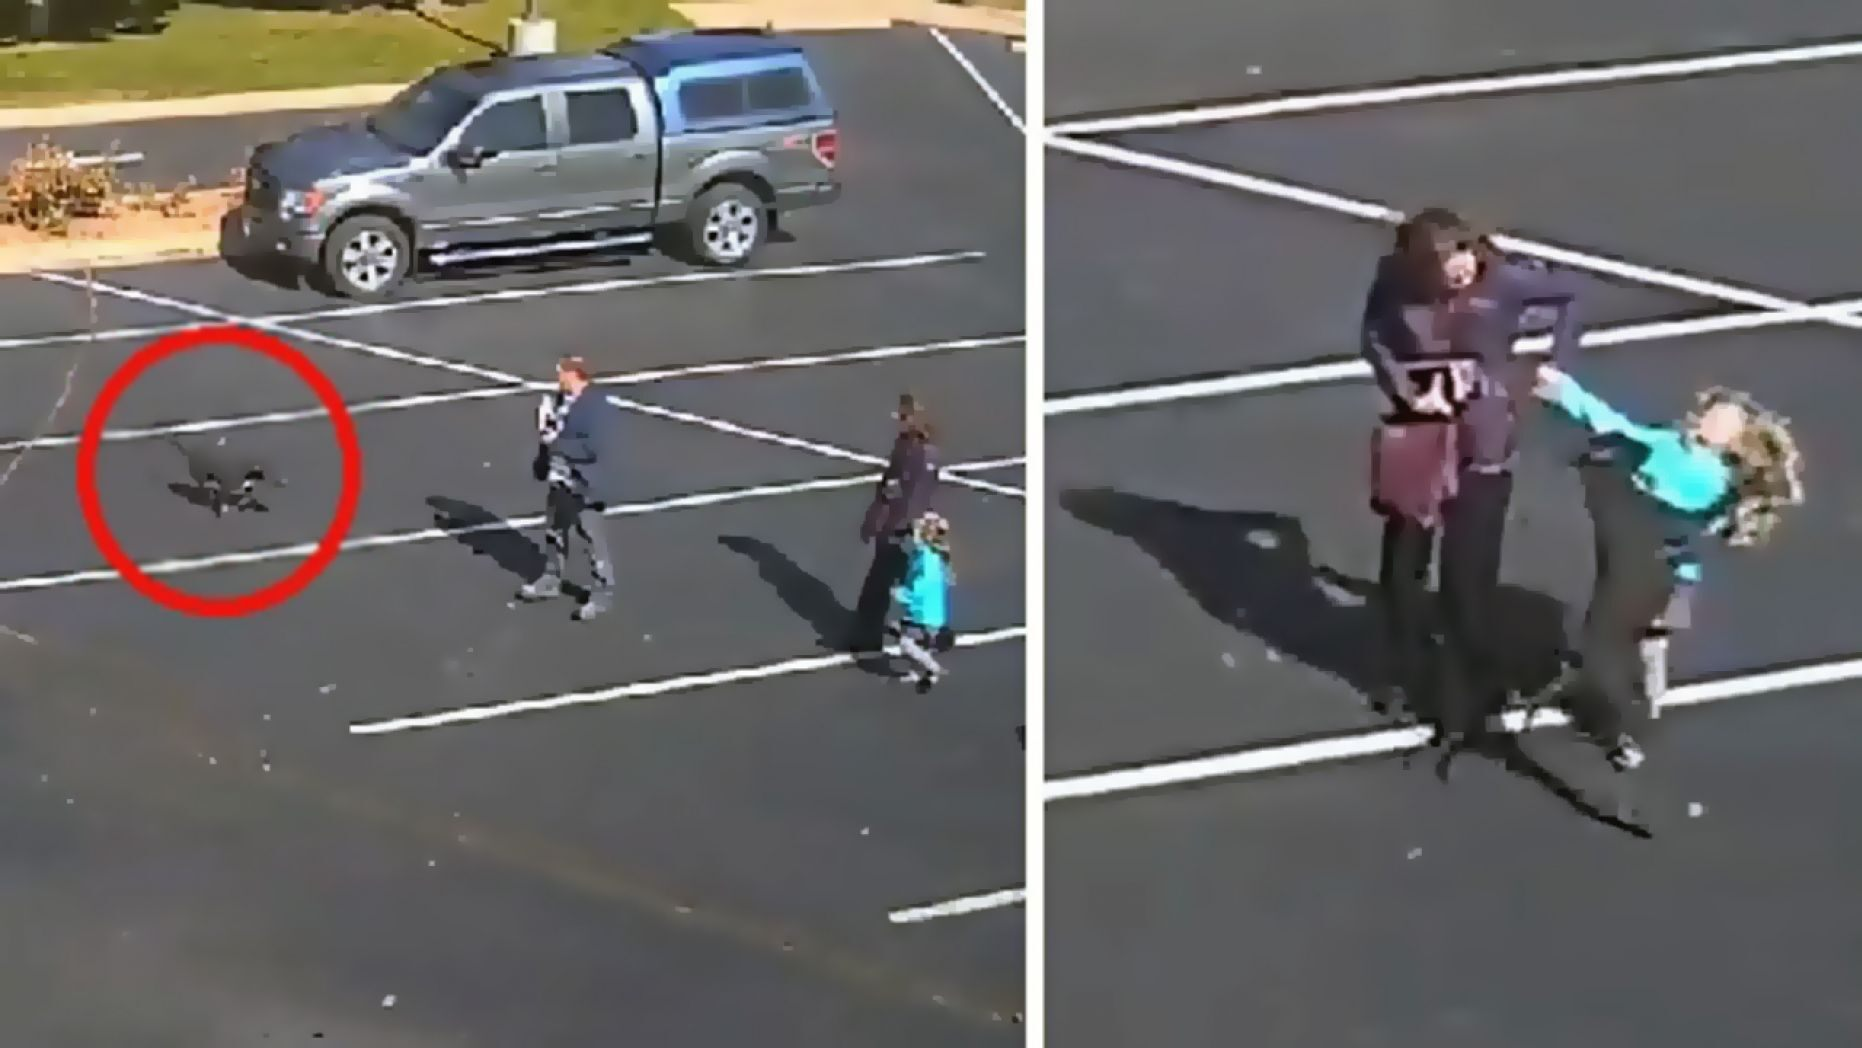 Surveillance footage shows a dog attack a child in a Colorado Springs, Colo. church parking lot